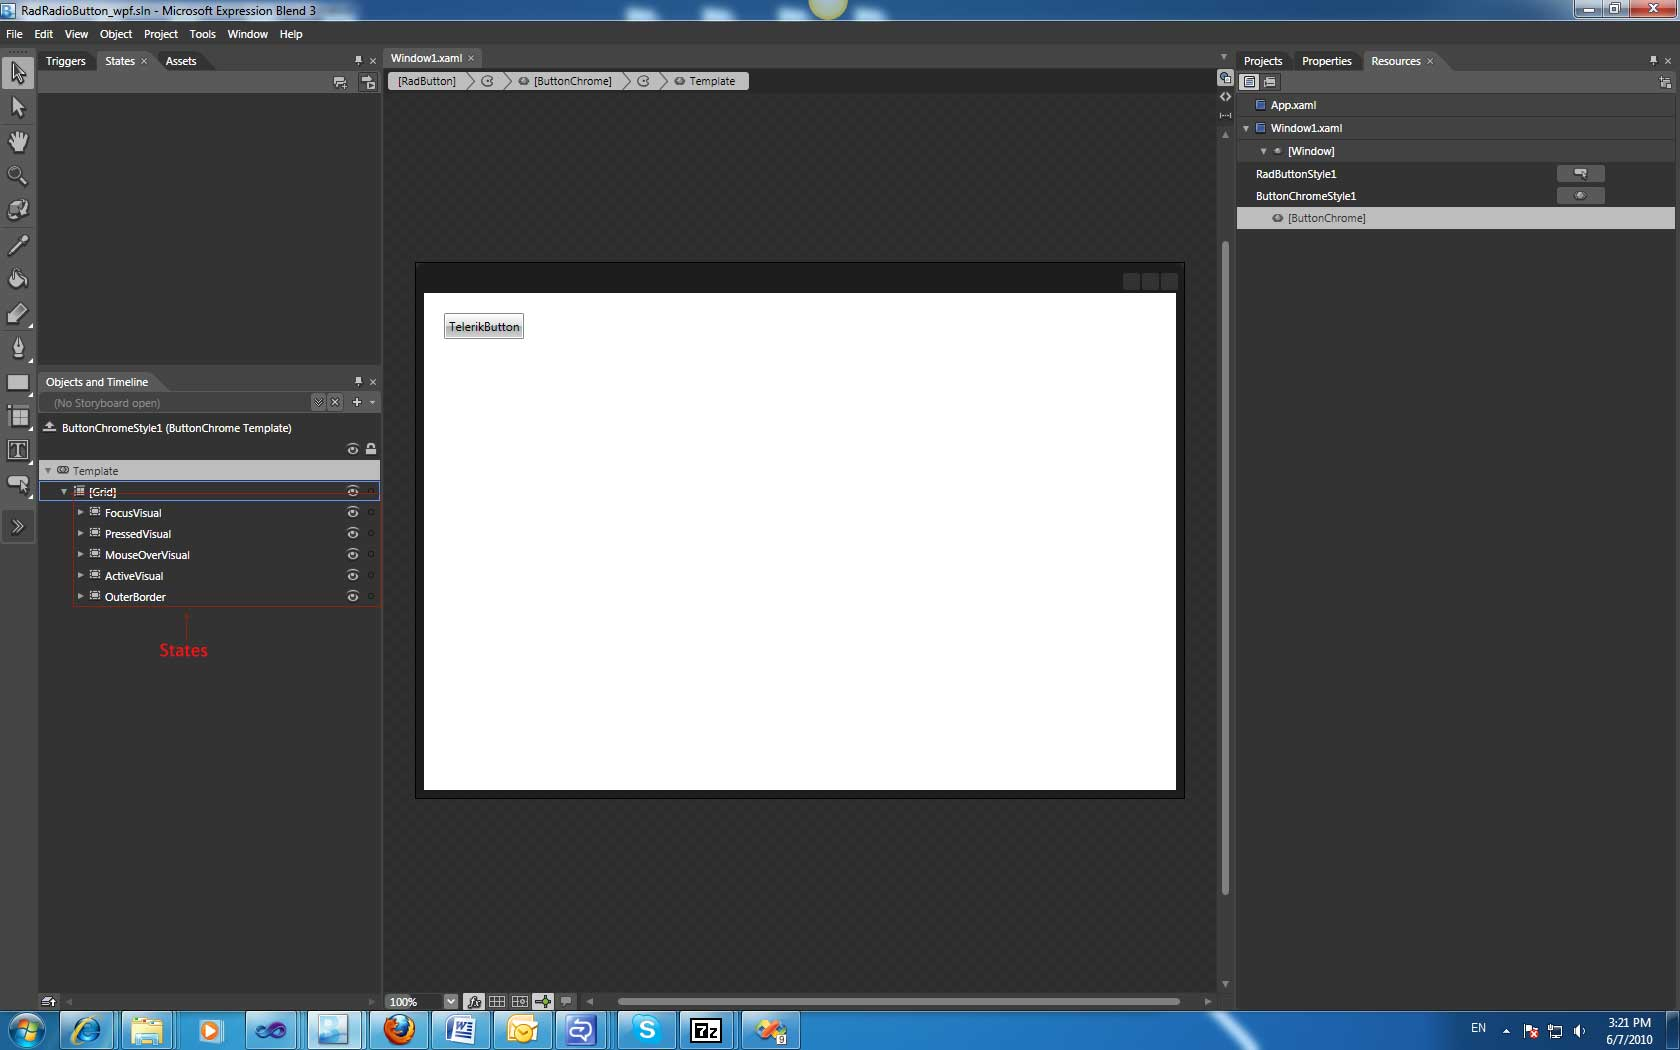 Changing mouse-over color in UI for WPF Buttons - Telerik Forums